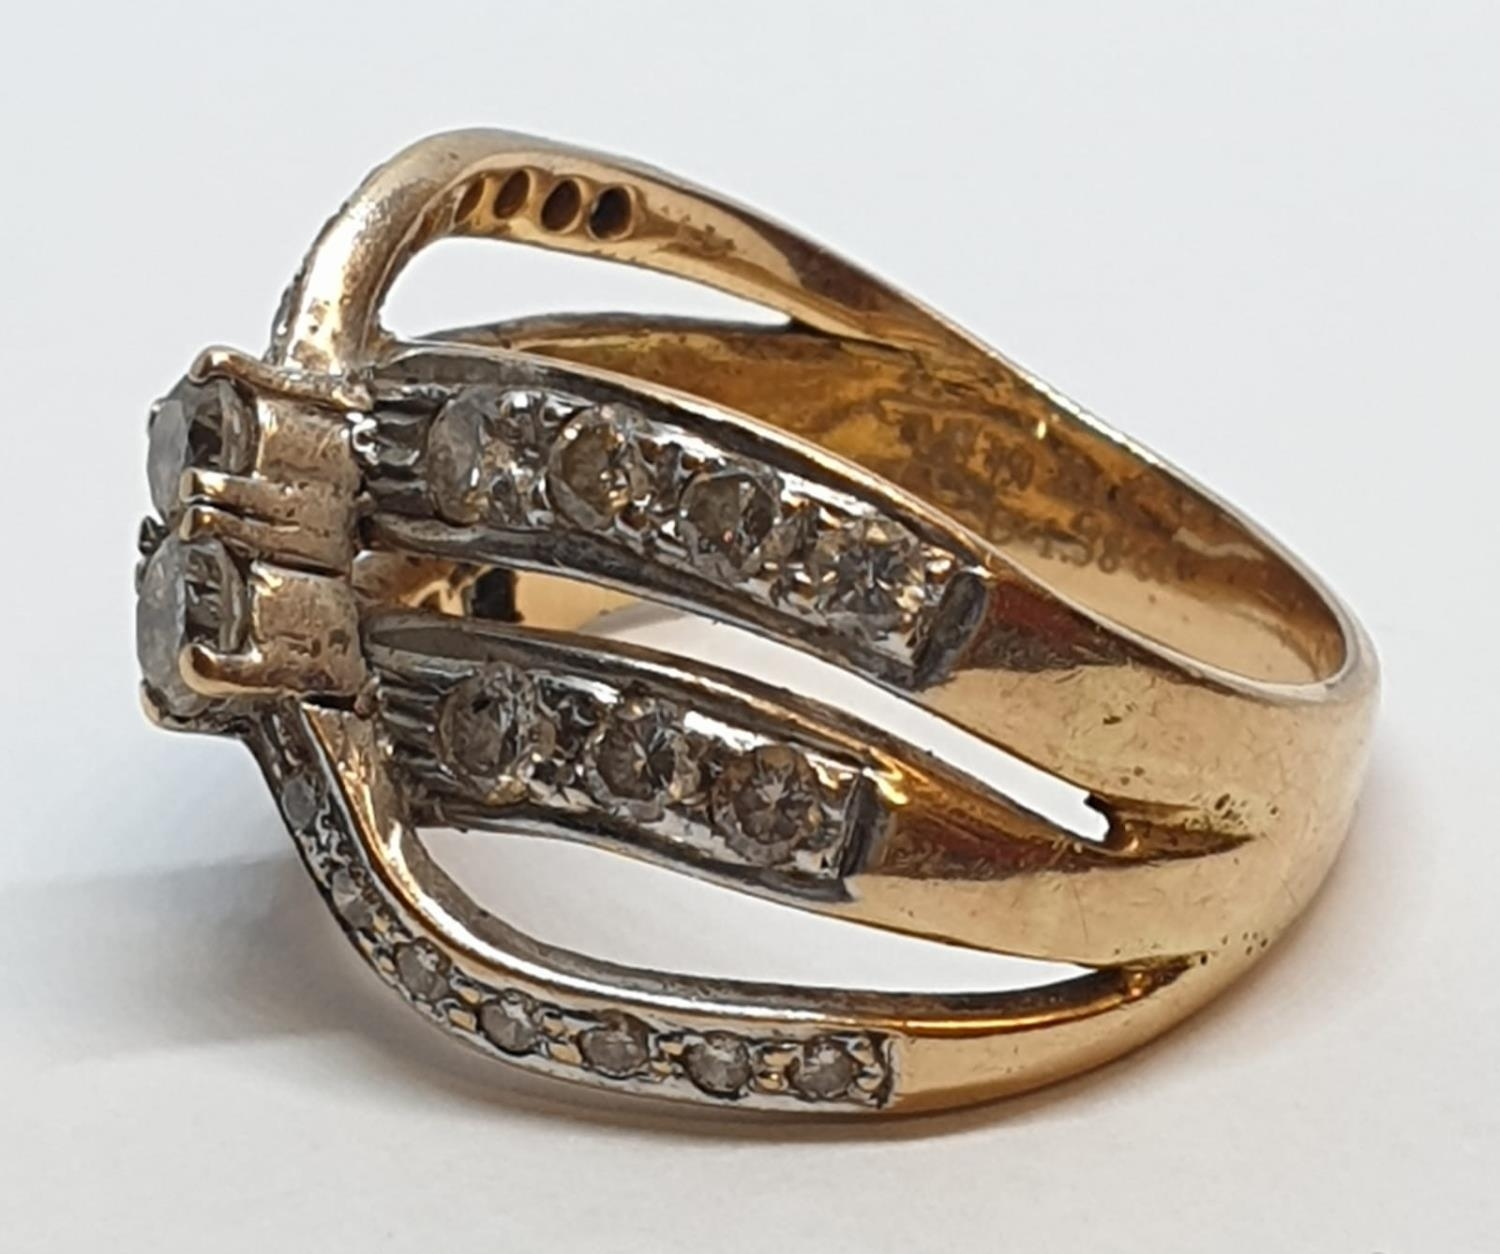 18ct Yellow gold diamond set fancy three row twist band ring. Weight 8.5g, Approx. 0.60ct of - Image 9 of 14